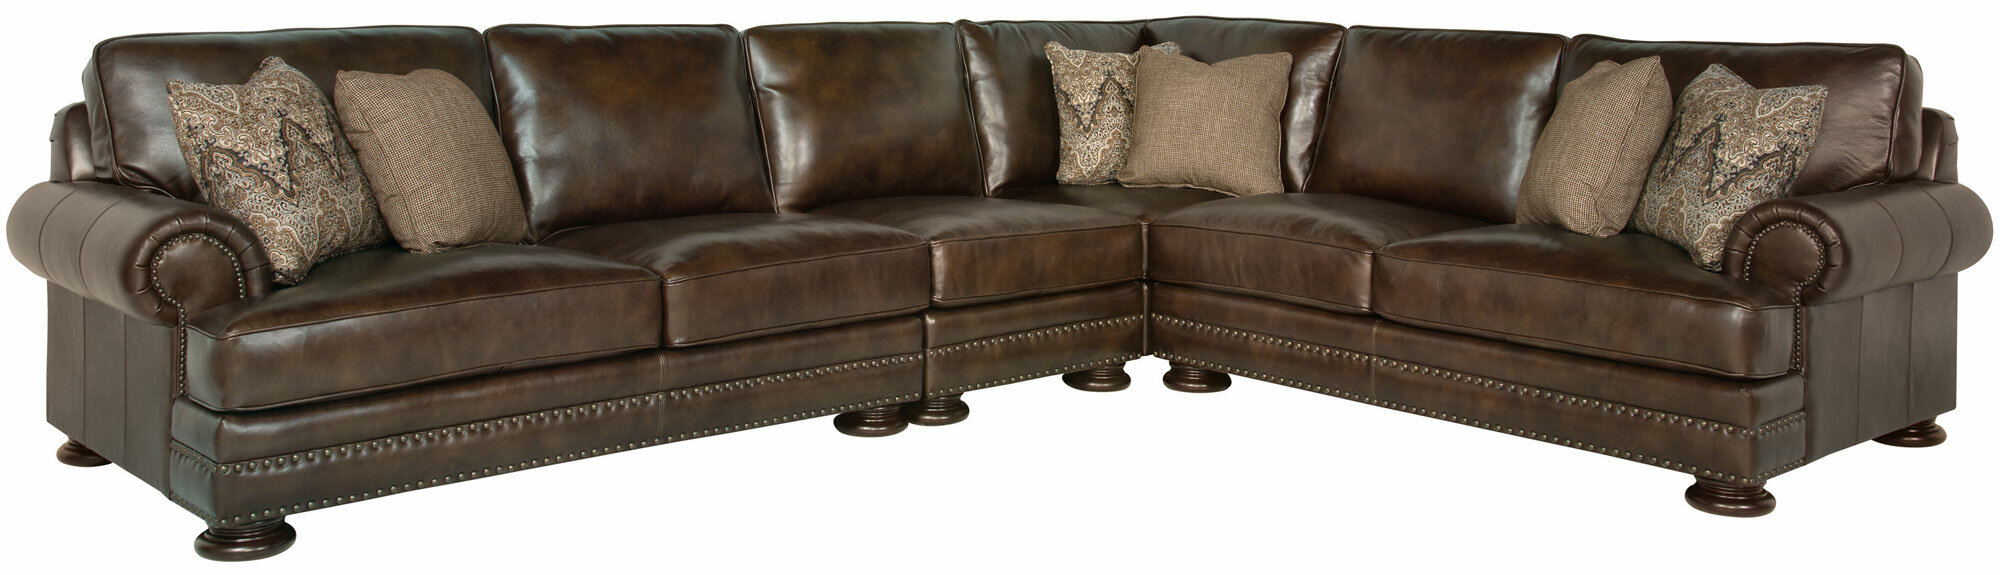 Charmant Bernhardt Foster Leather Modular Sectional | Wayfair